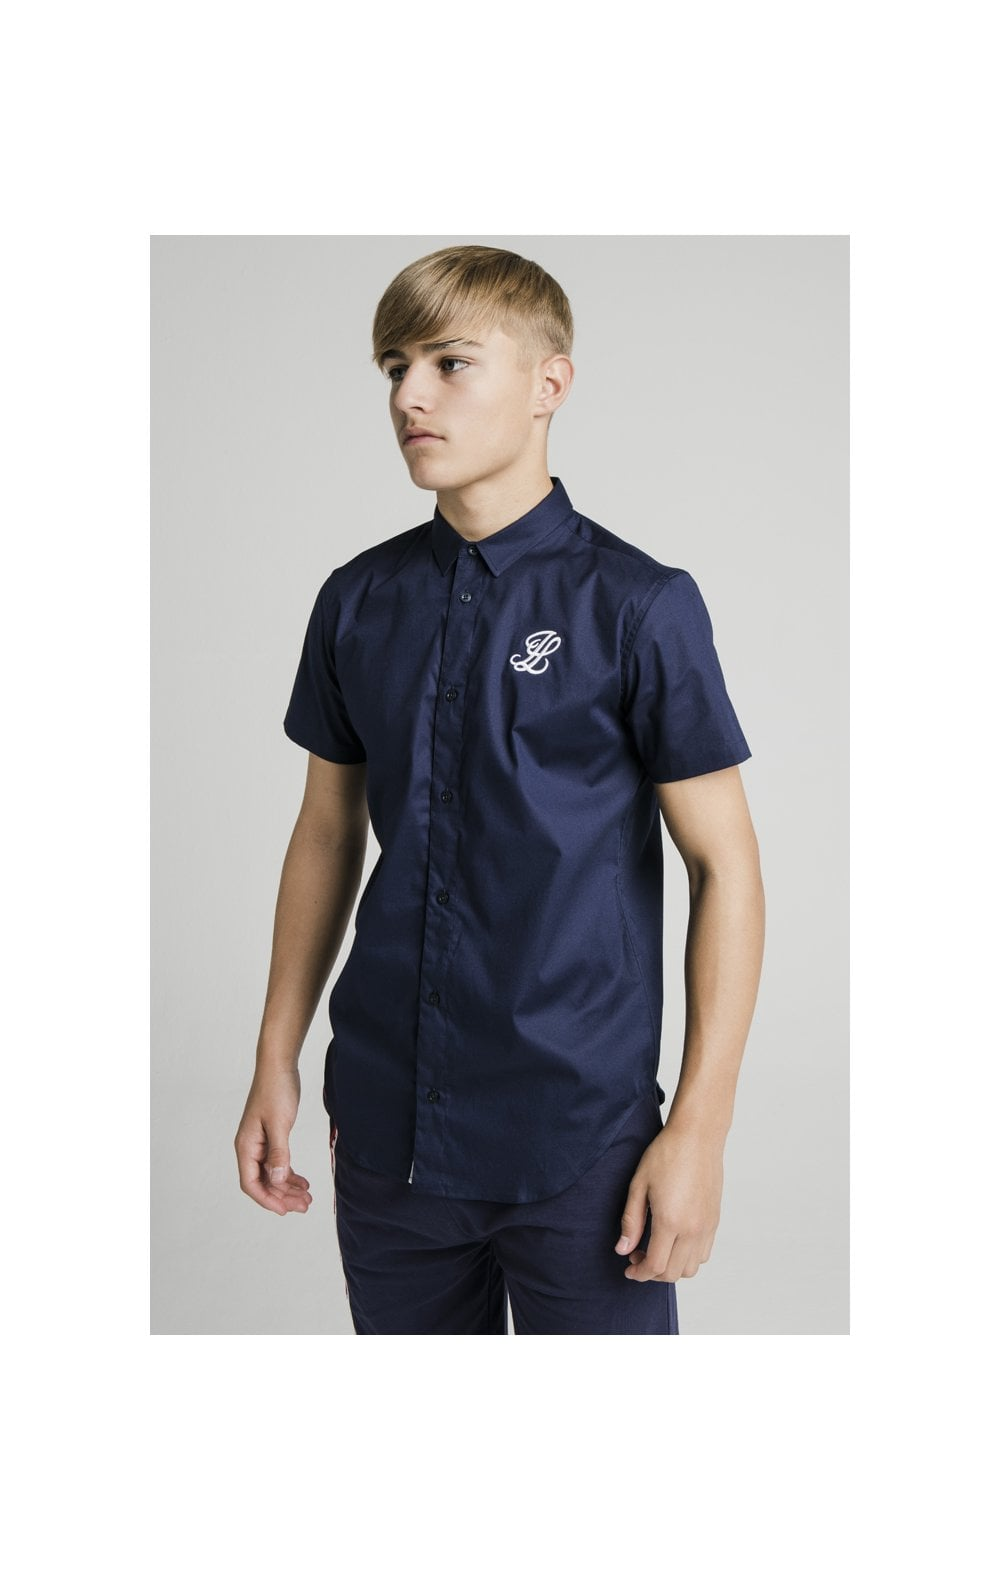 Illusive London S/S Grandad Shirt - Navy